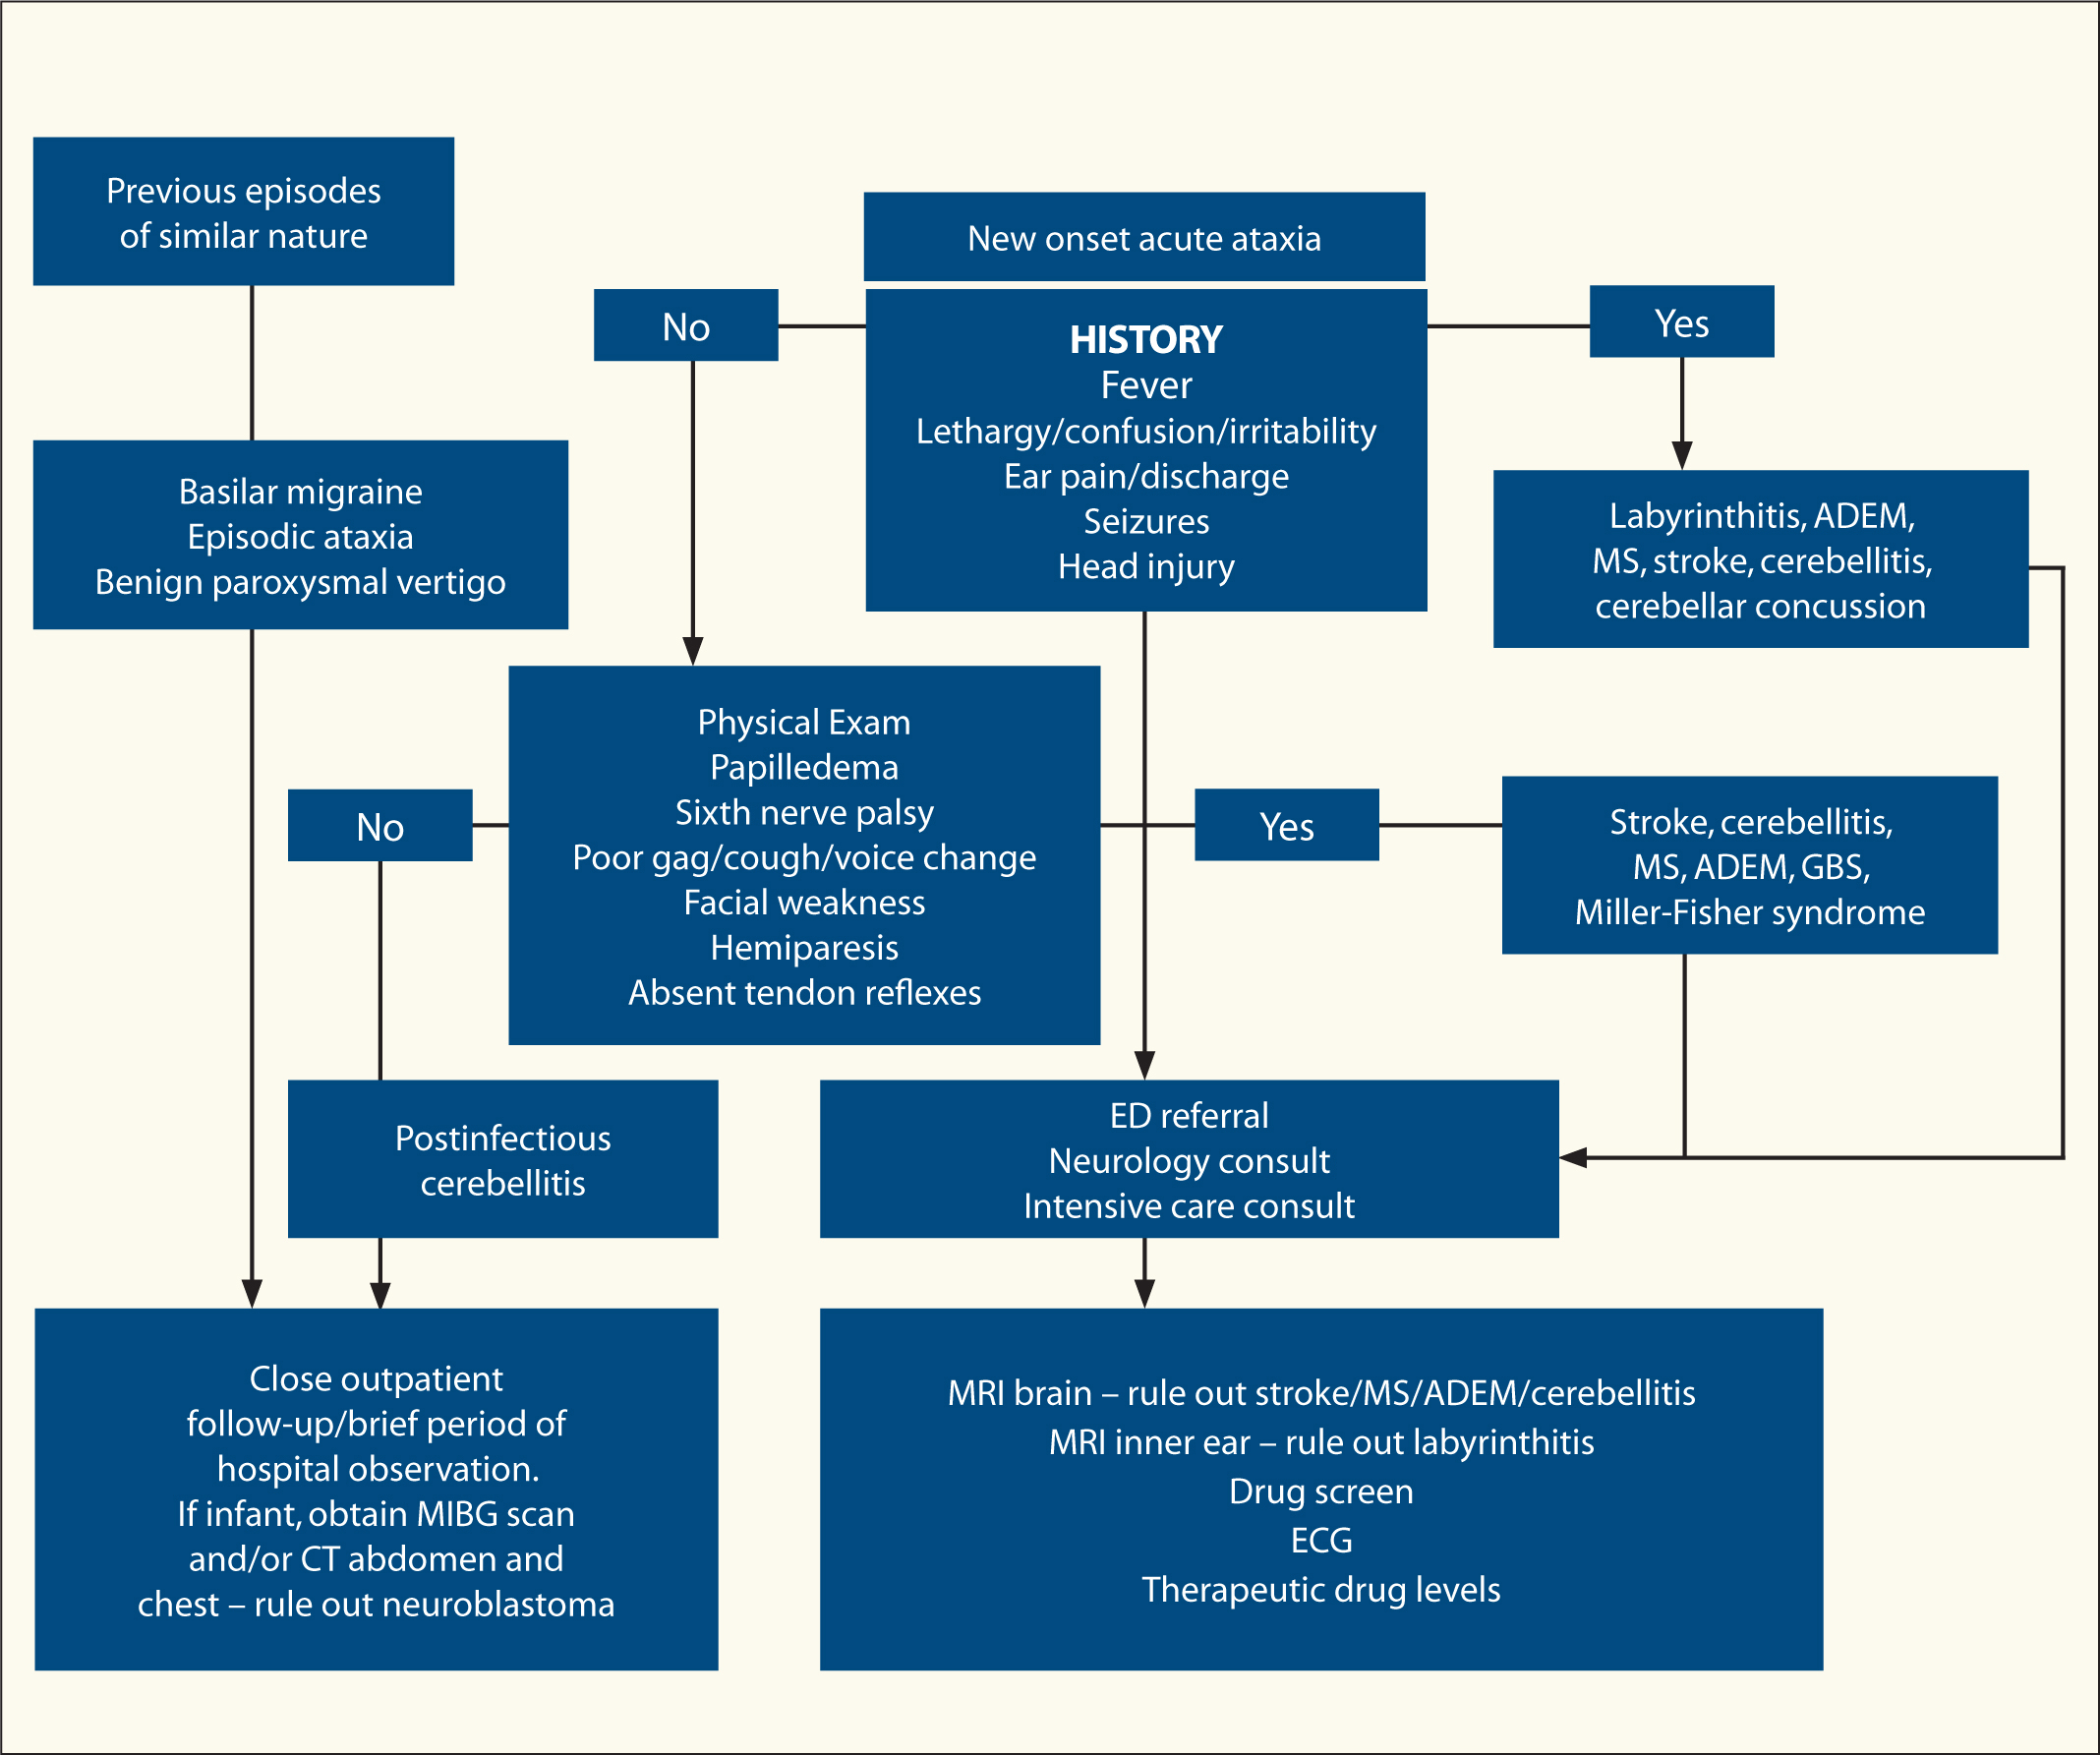 Algorithm for investigating acute ataxia. ADEM = acute disseminated encephalomyelitis; CT = computed tomography; ECG = electrocardiogram; ED = emergency department; GBS = Guillain-Barré syndrome; MIBG = metaiodobenzylguanidine scintigraphy; MS = multiple sclerosis; MRI = magnetic resonance imaging.Figure courtesy of Lalitha Sivaswamy, MD.